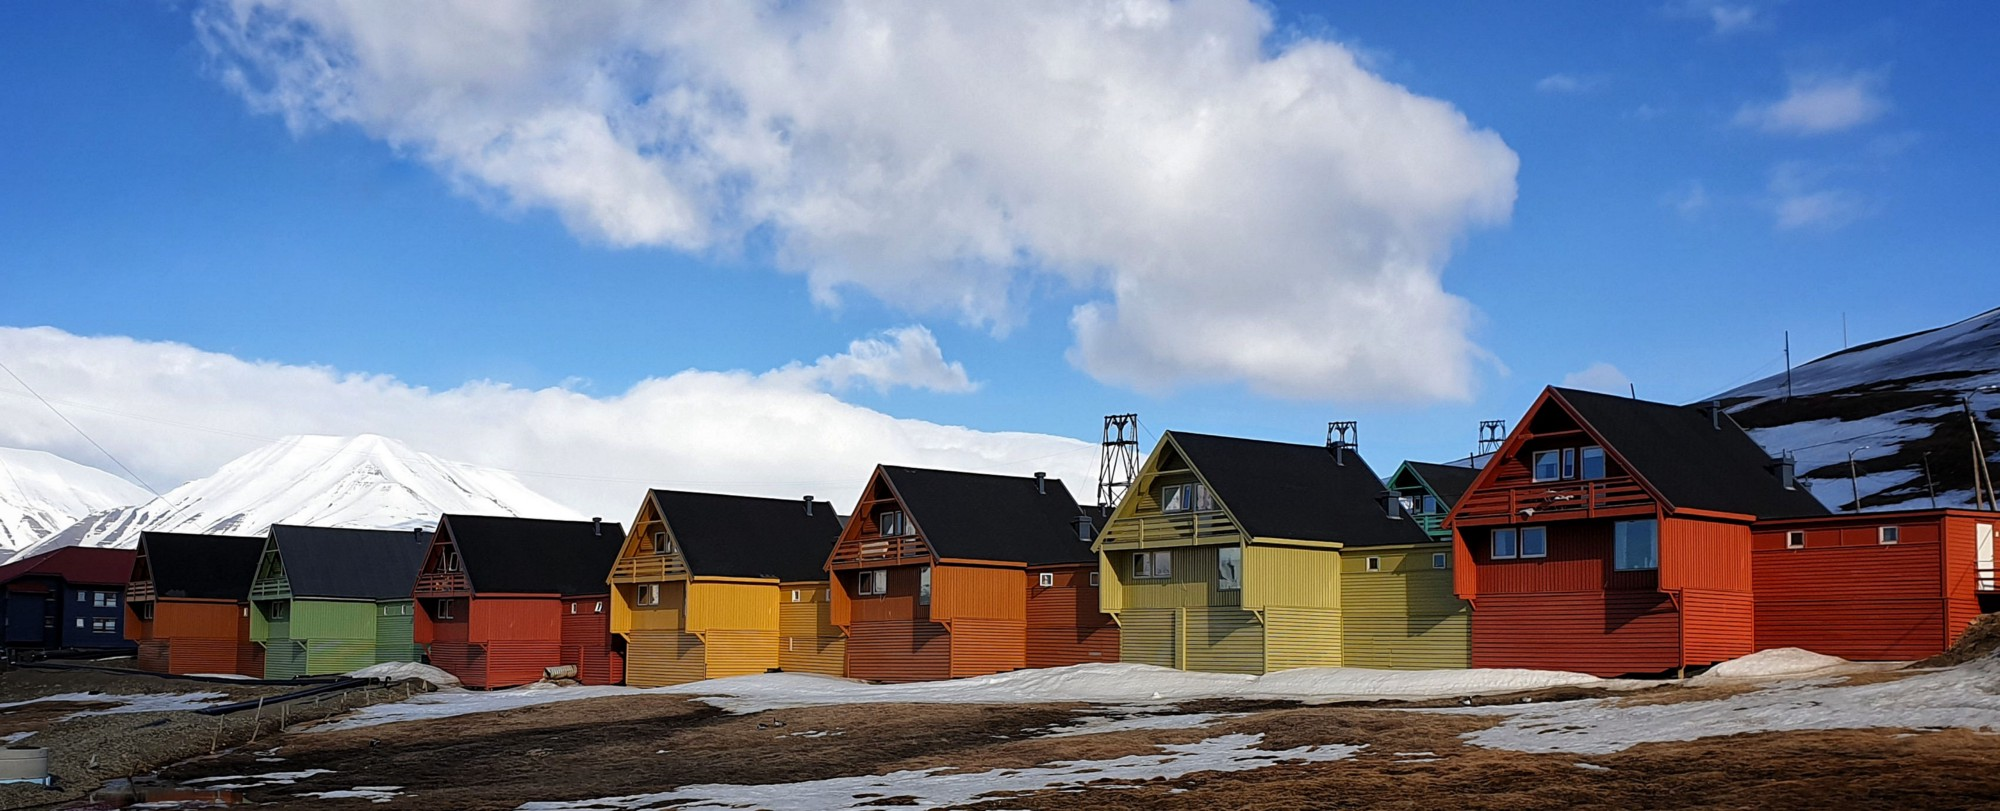 A row of coloful themed houses in Longyearbyen, Svalbard.